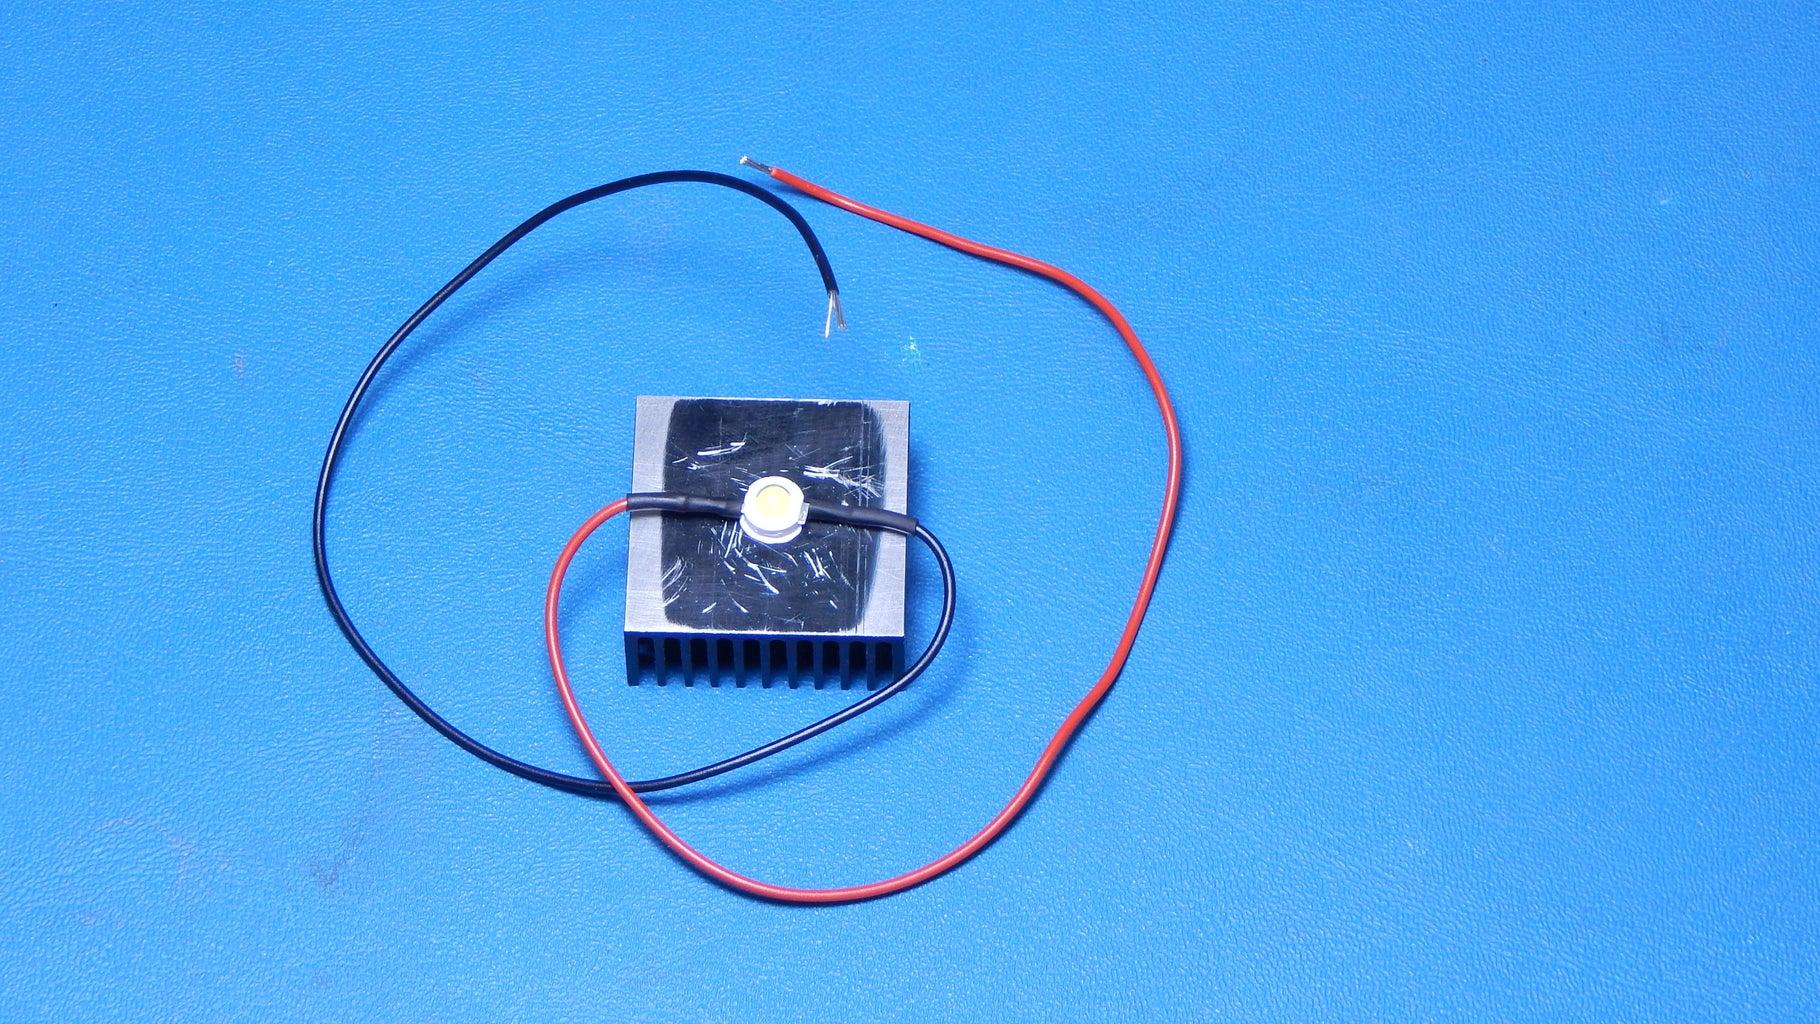 The LED, Thermal Cutoff, and Heatsink Wiring